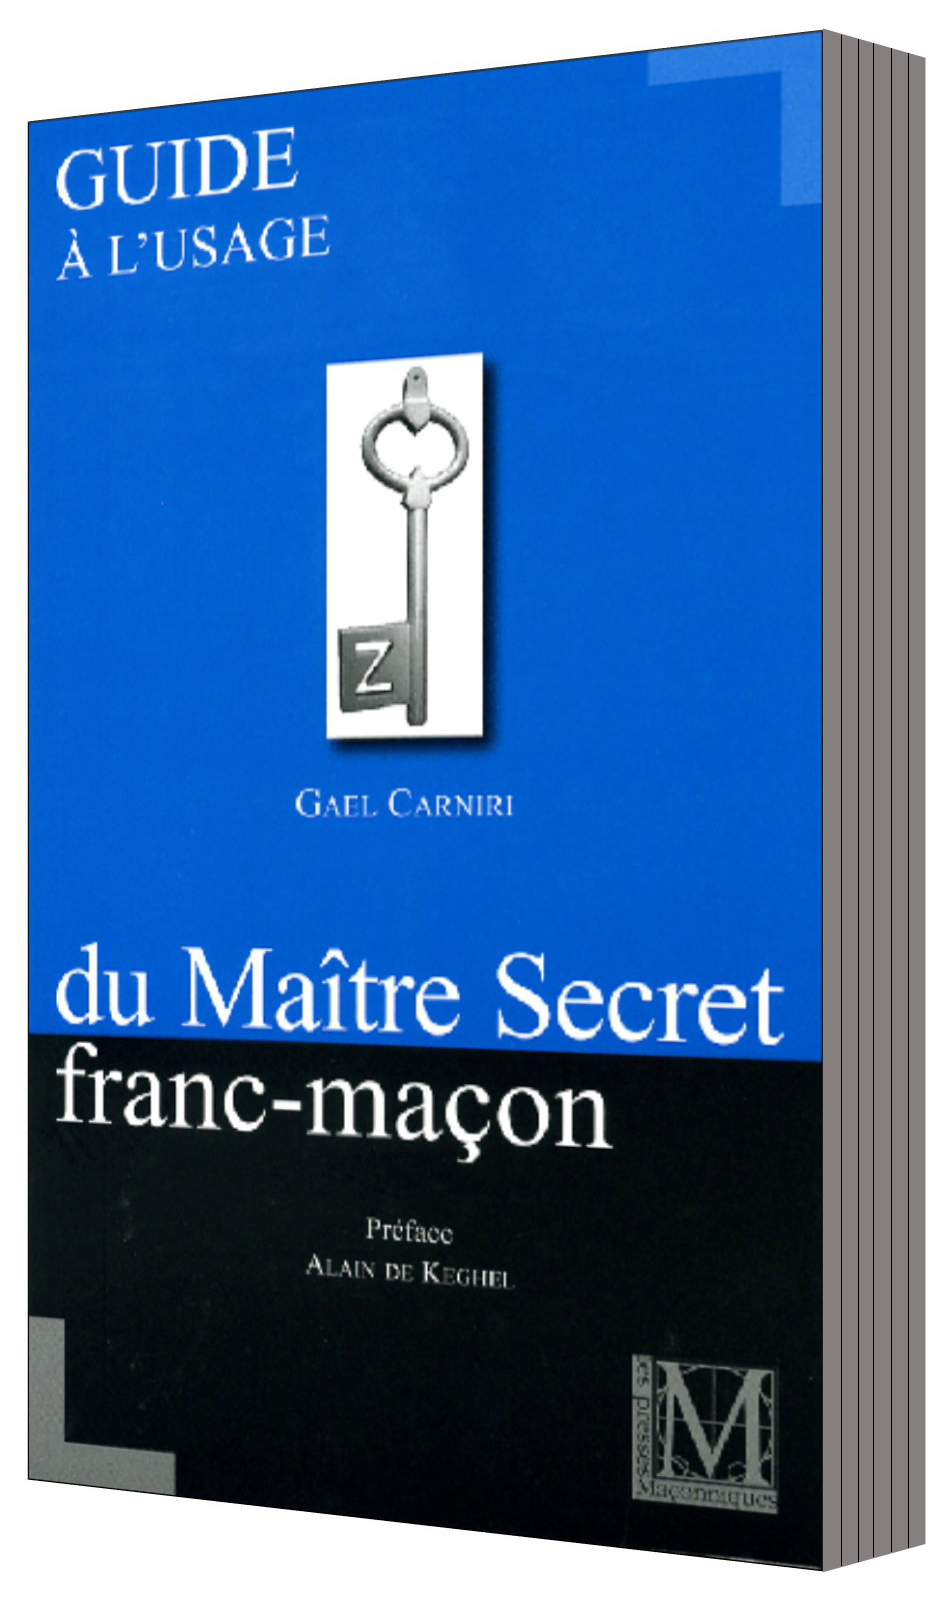 Guide à l'usage du Maître Secret > Best seller